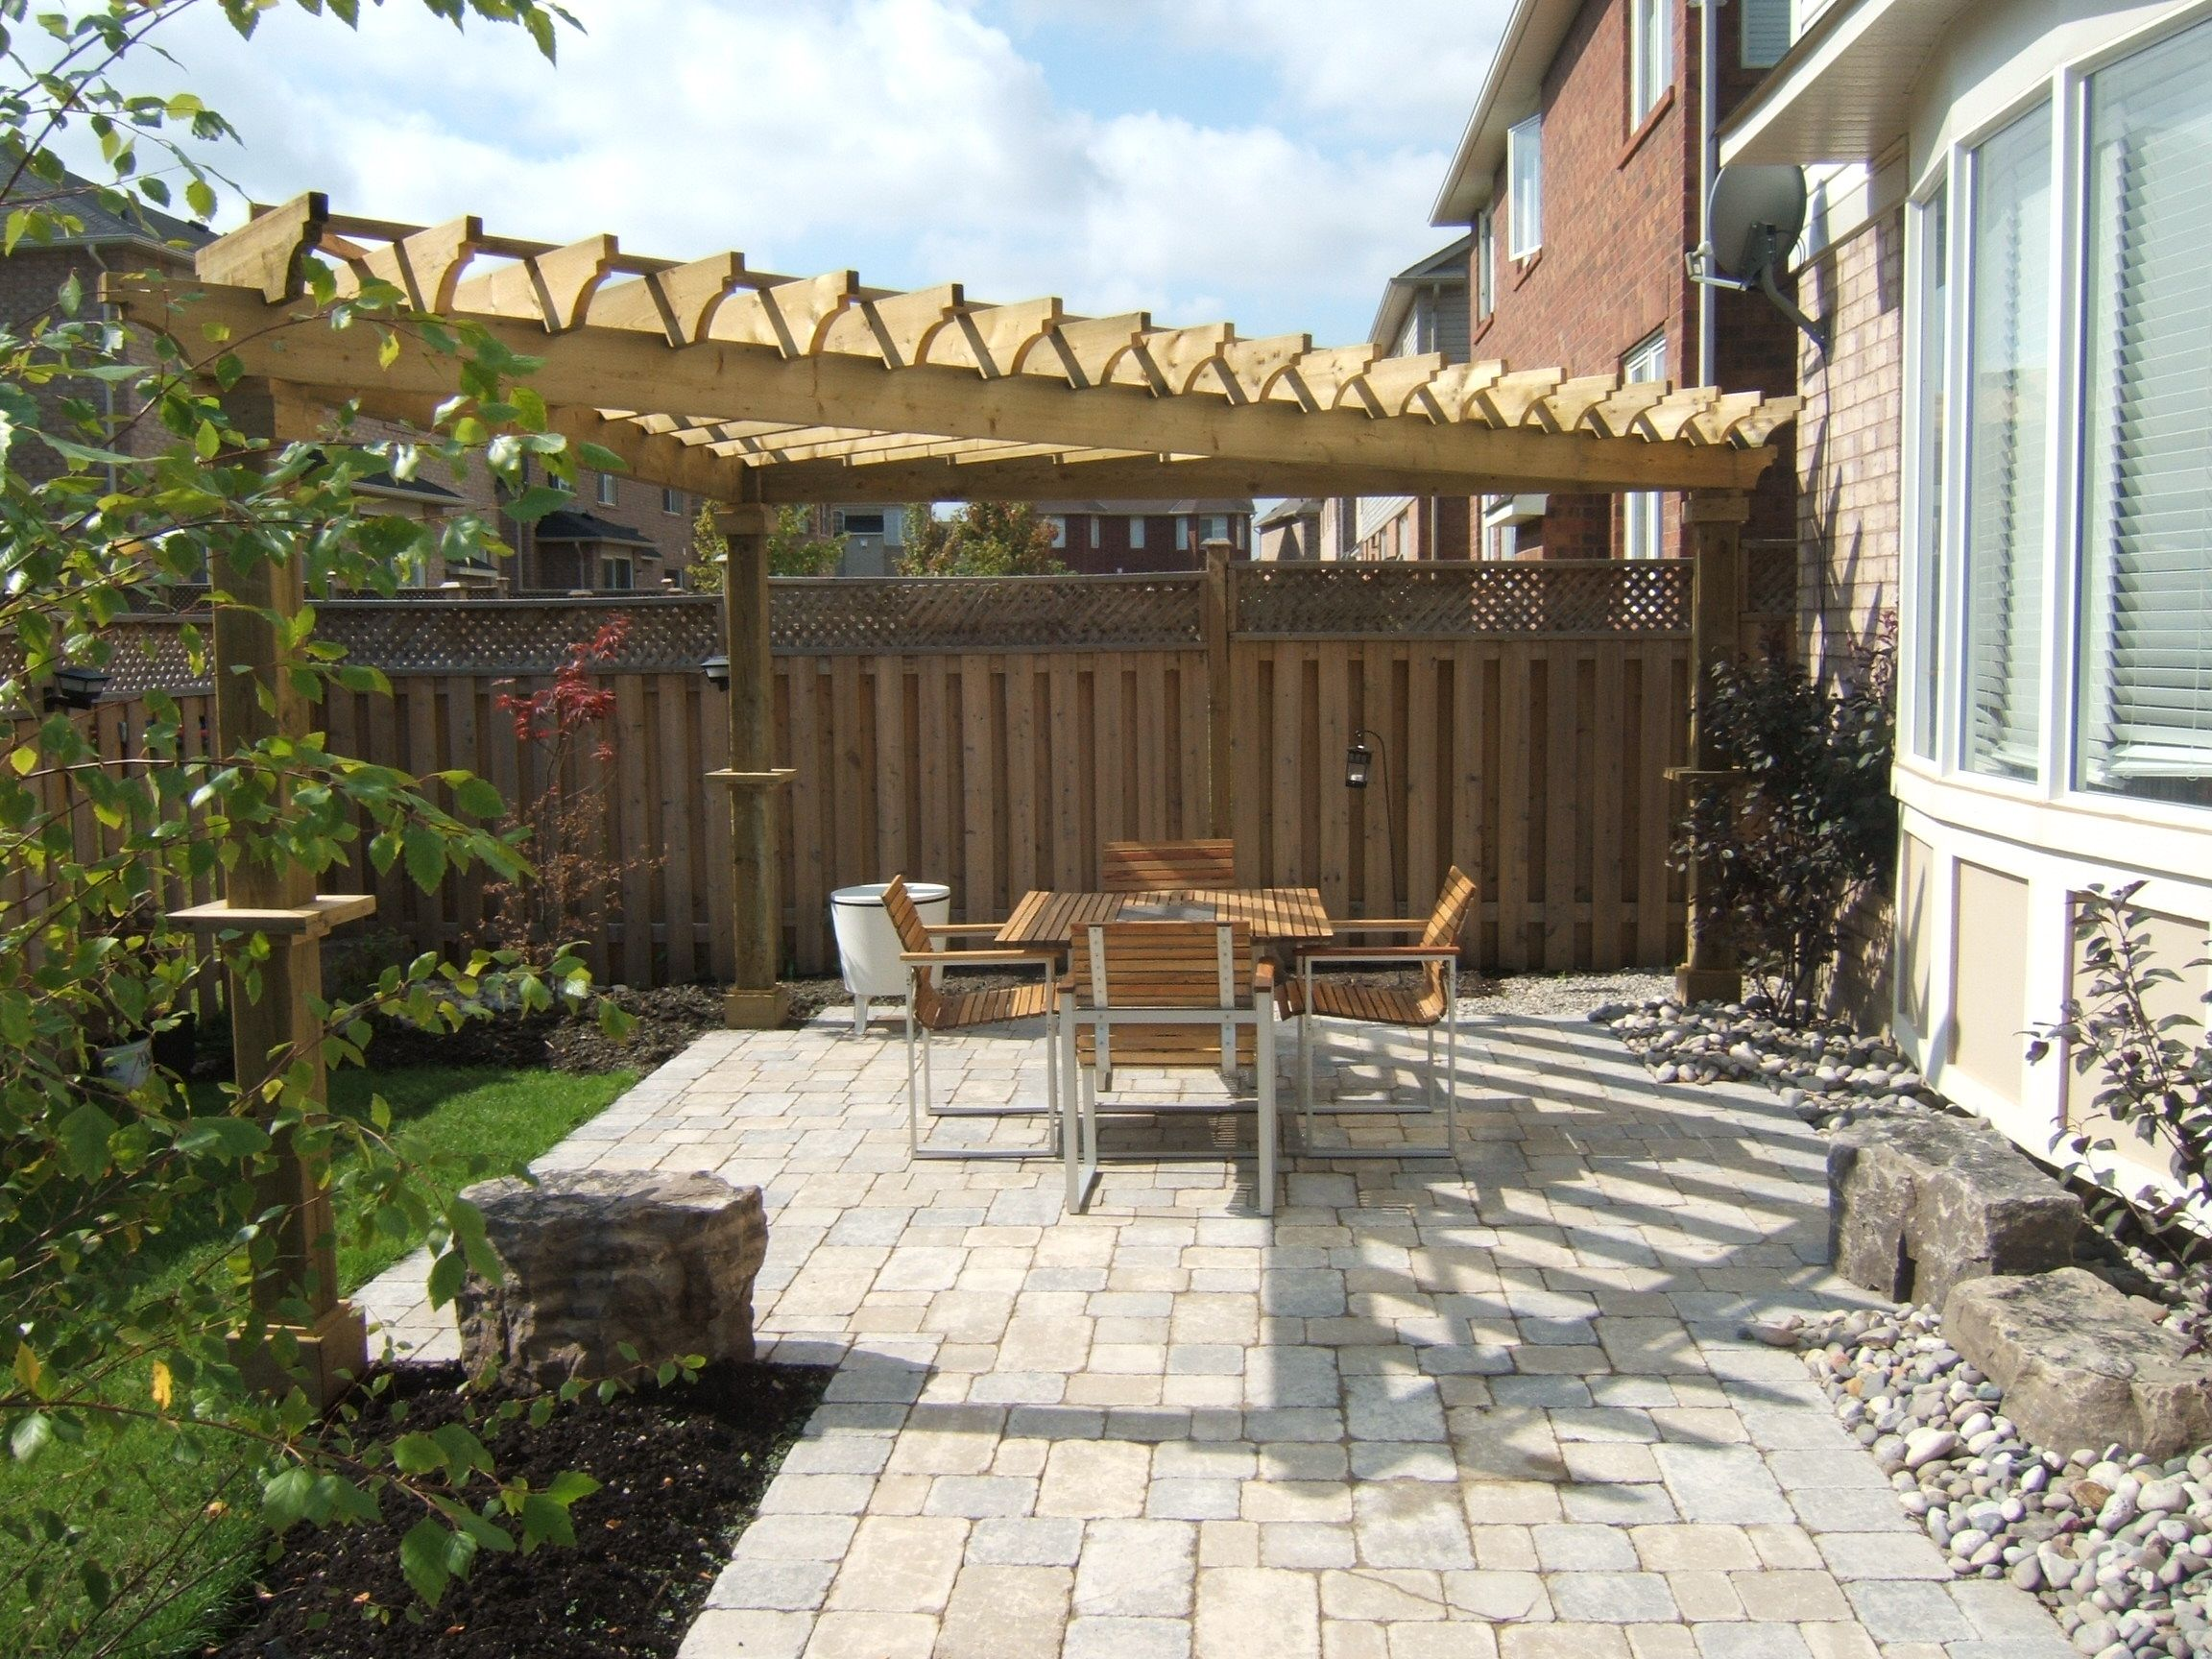 Triangular Pergola With Boots And Collars Over An Interlock Patio.